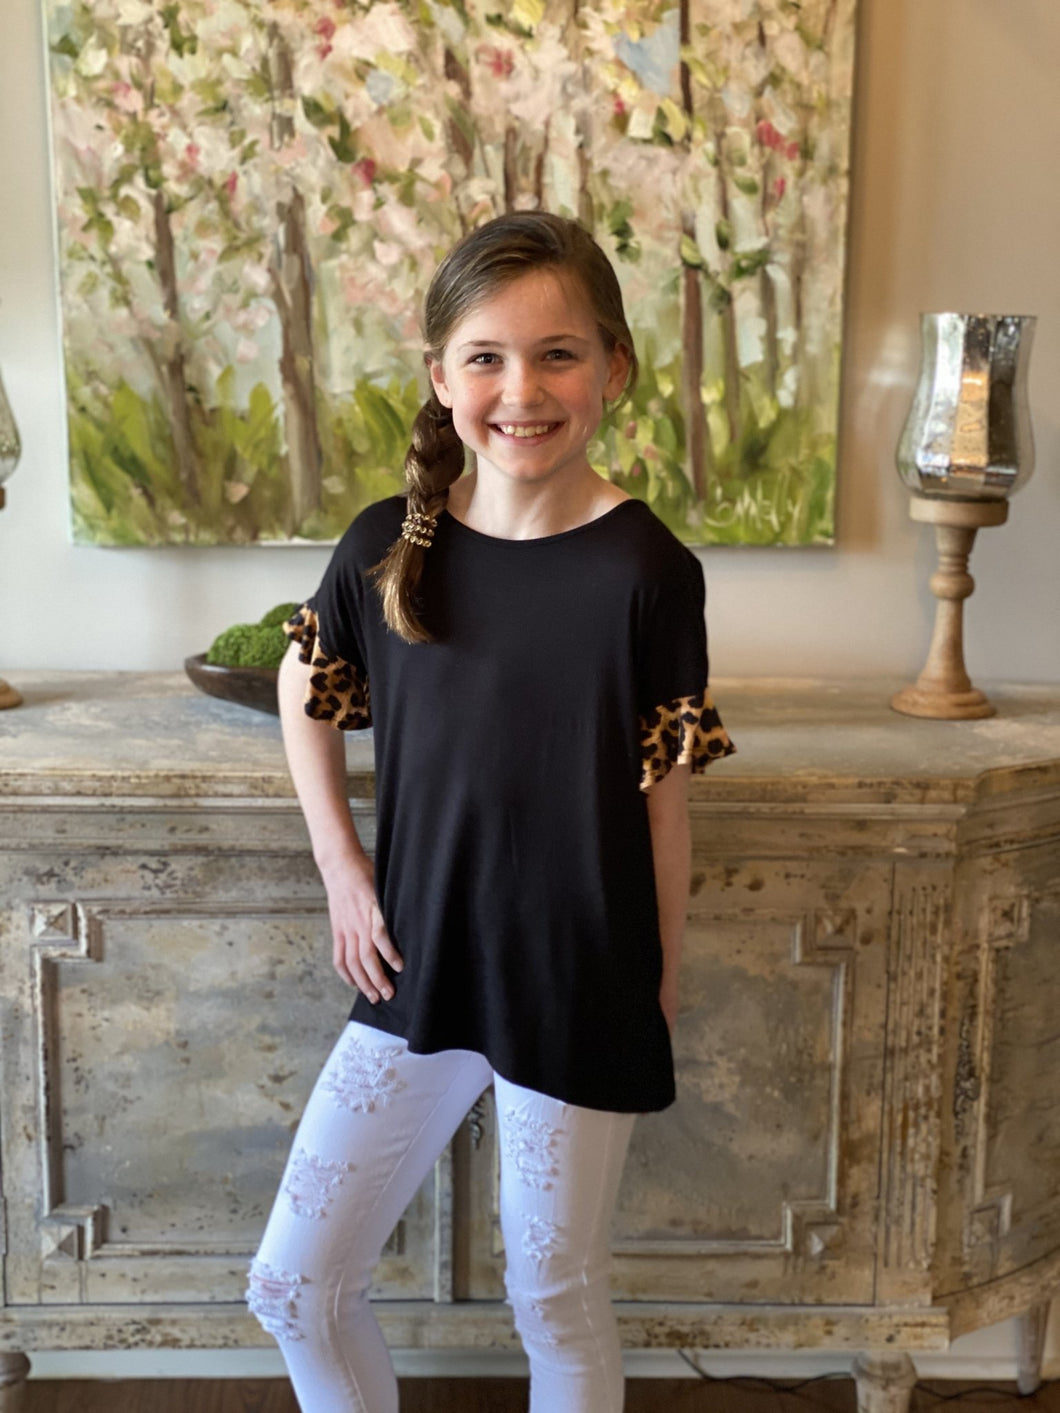 Leopard Ruffle Sleeve Top - jernijacks